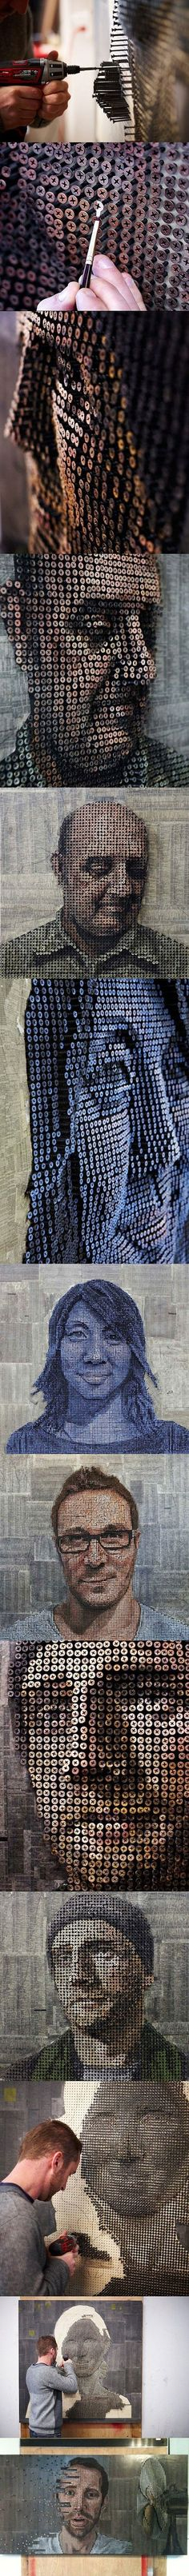 portraits made out of screws by Andrew Myers Amazing portraits made out of screws by Andrew Myers. check out his website.Amazing portraits made out of screws by Andrew Myers. check out his website. 3d Portrait, Street Art, Instalation Art, Sculpture Metal, Wow Art, Art Plastique, Oeuvre D'art, Creative Art, Art Projects